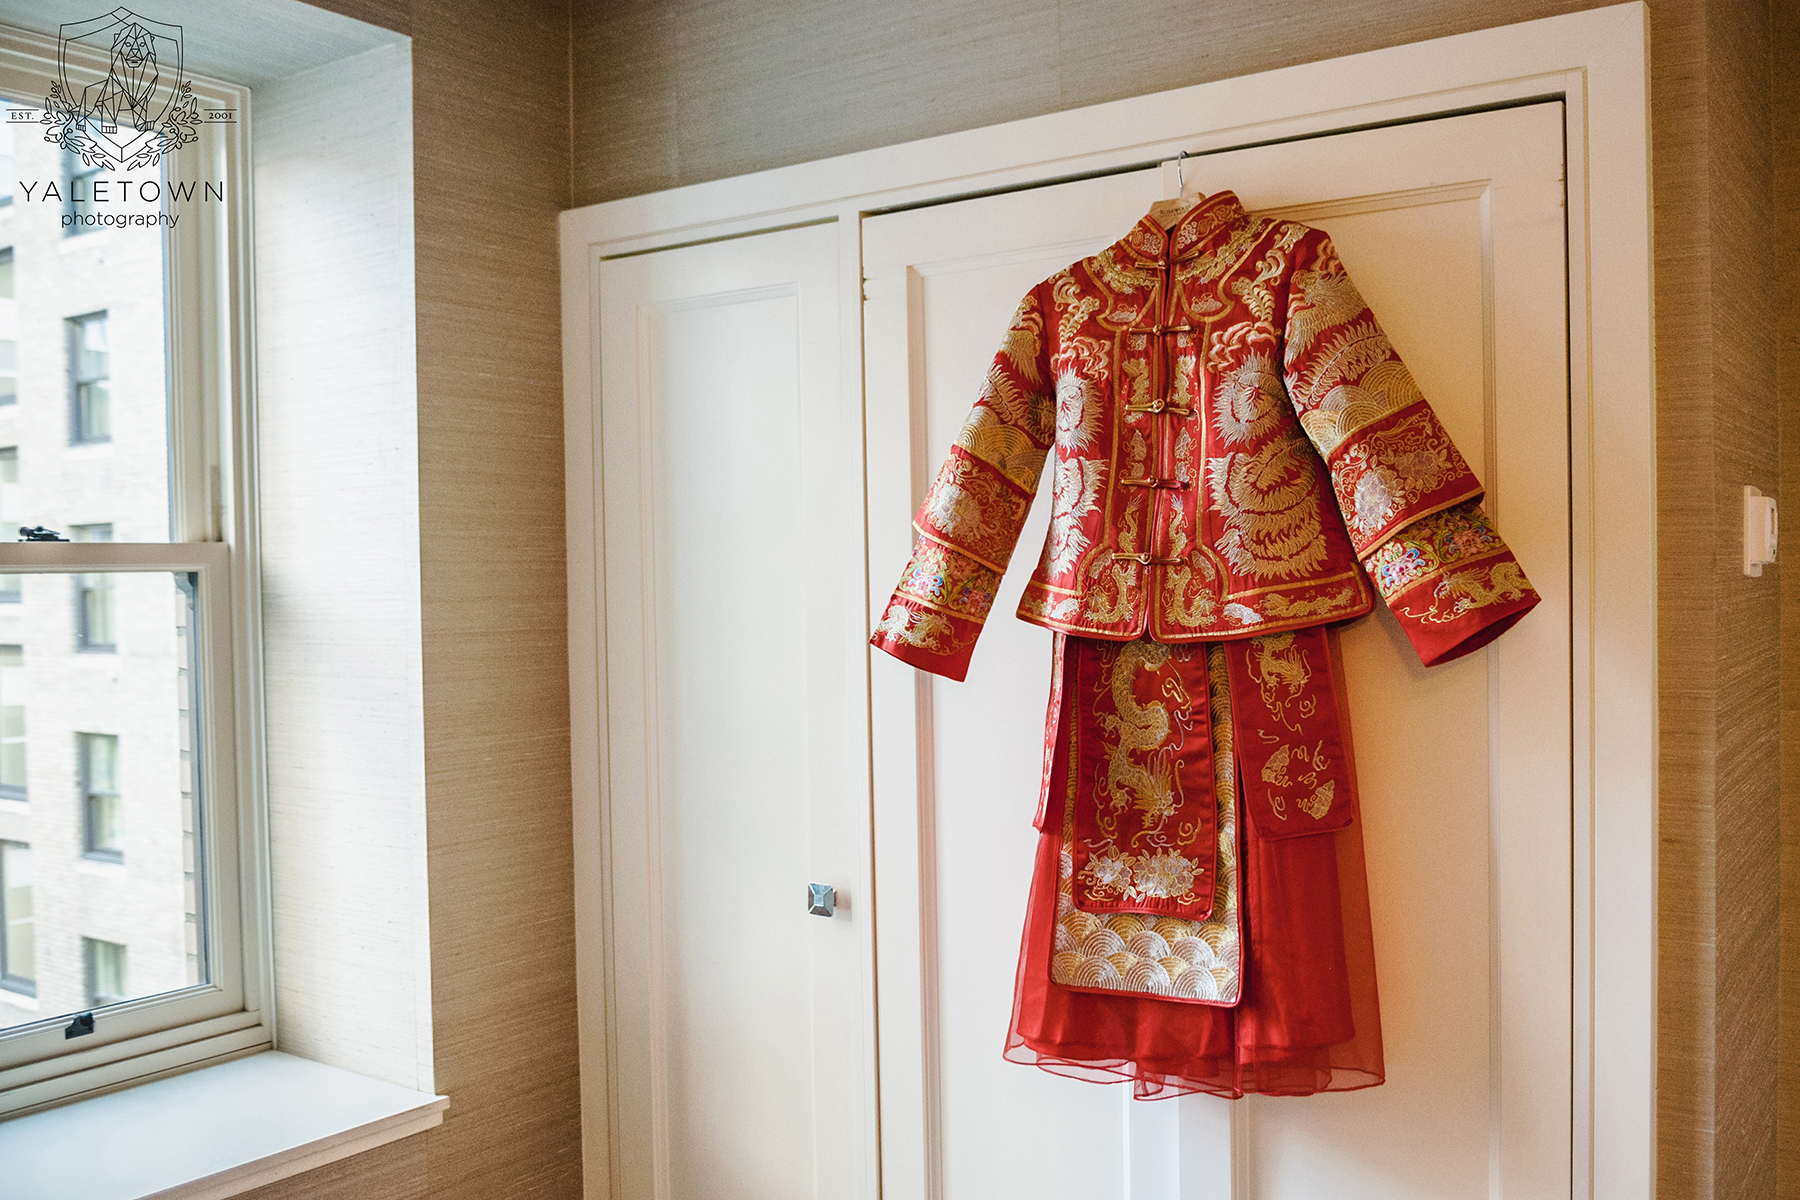 Chinese-Tea-Ceremony-Bridal-Gown-Rosewood-Hotel-Georgia-Vancouver-Wedding-Yaletown-Photography-photo